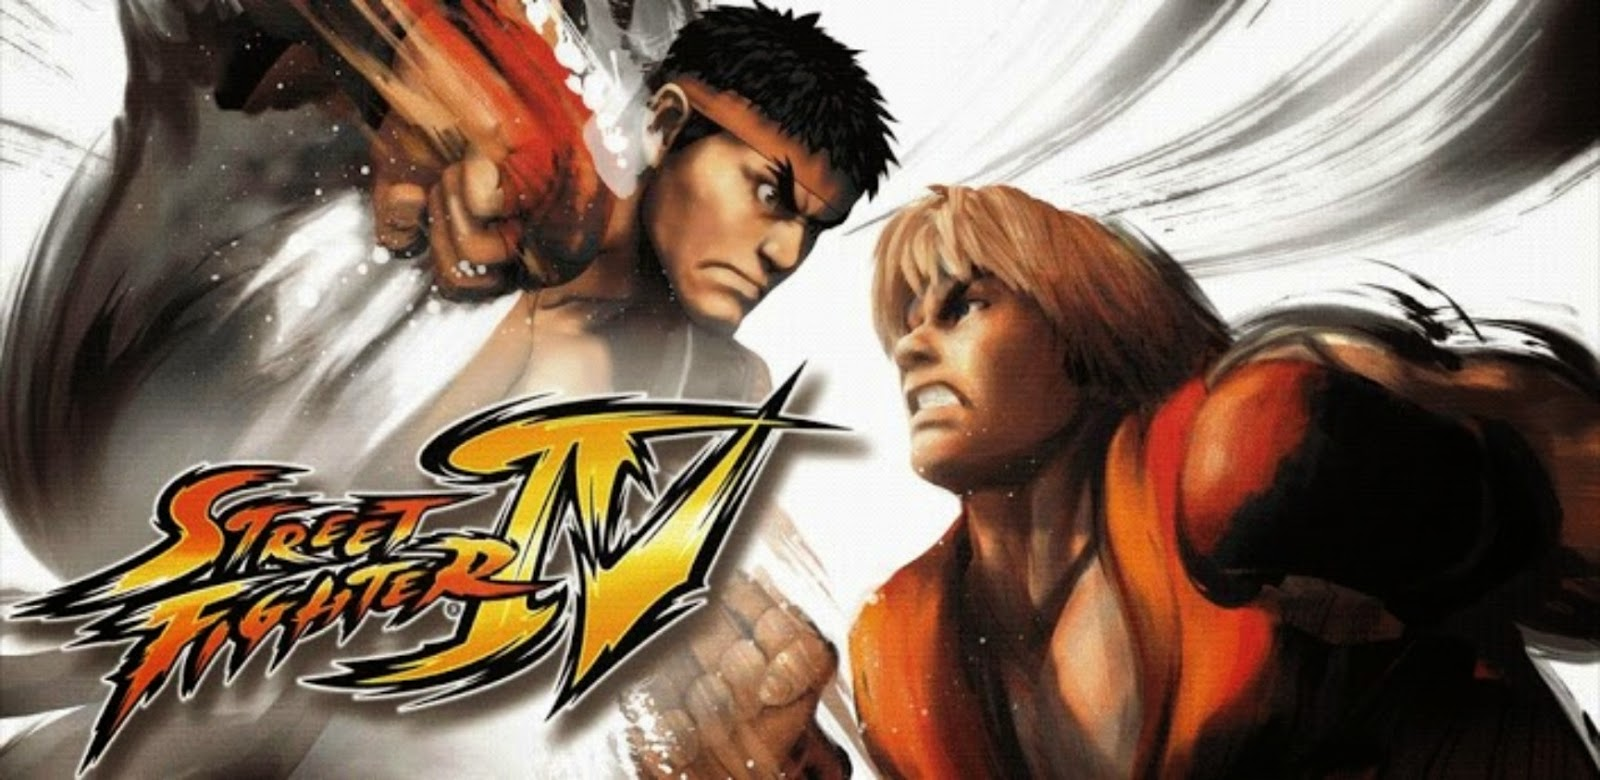 STREET FIGHTER IV HD Apk Data Android Games